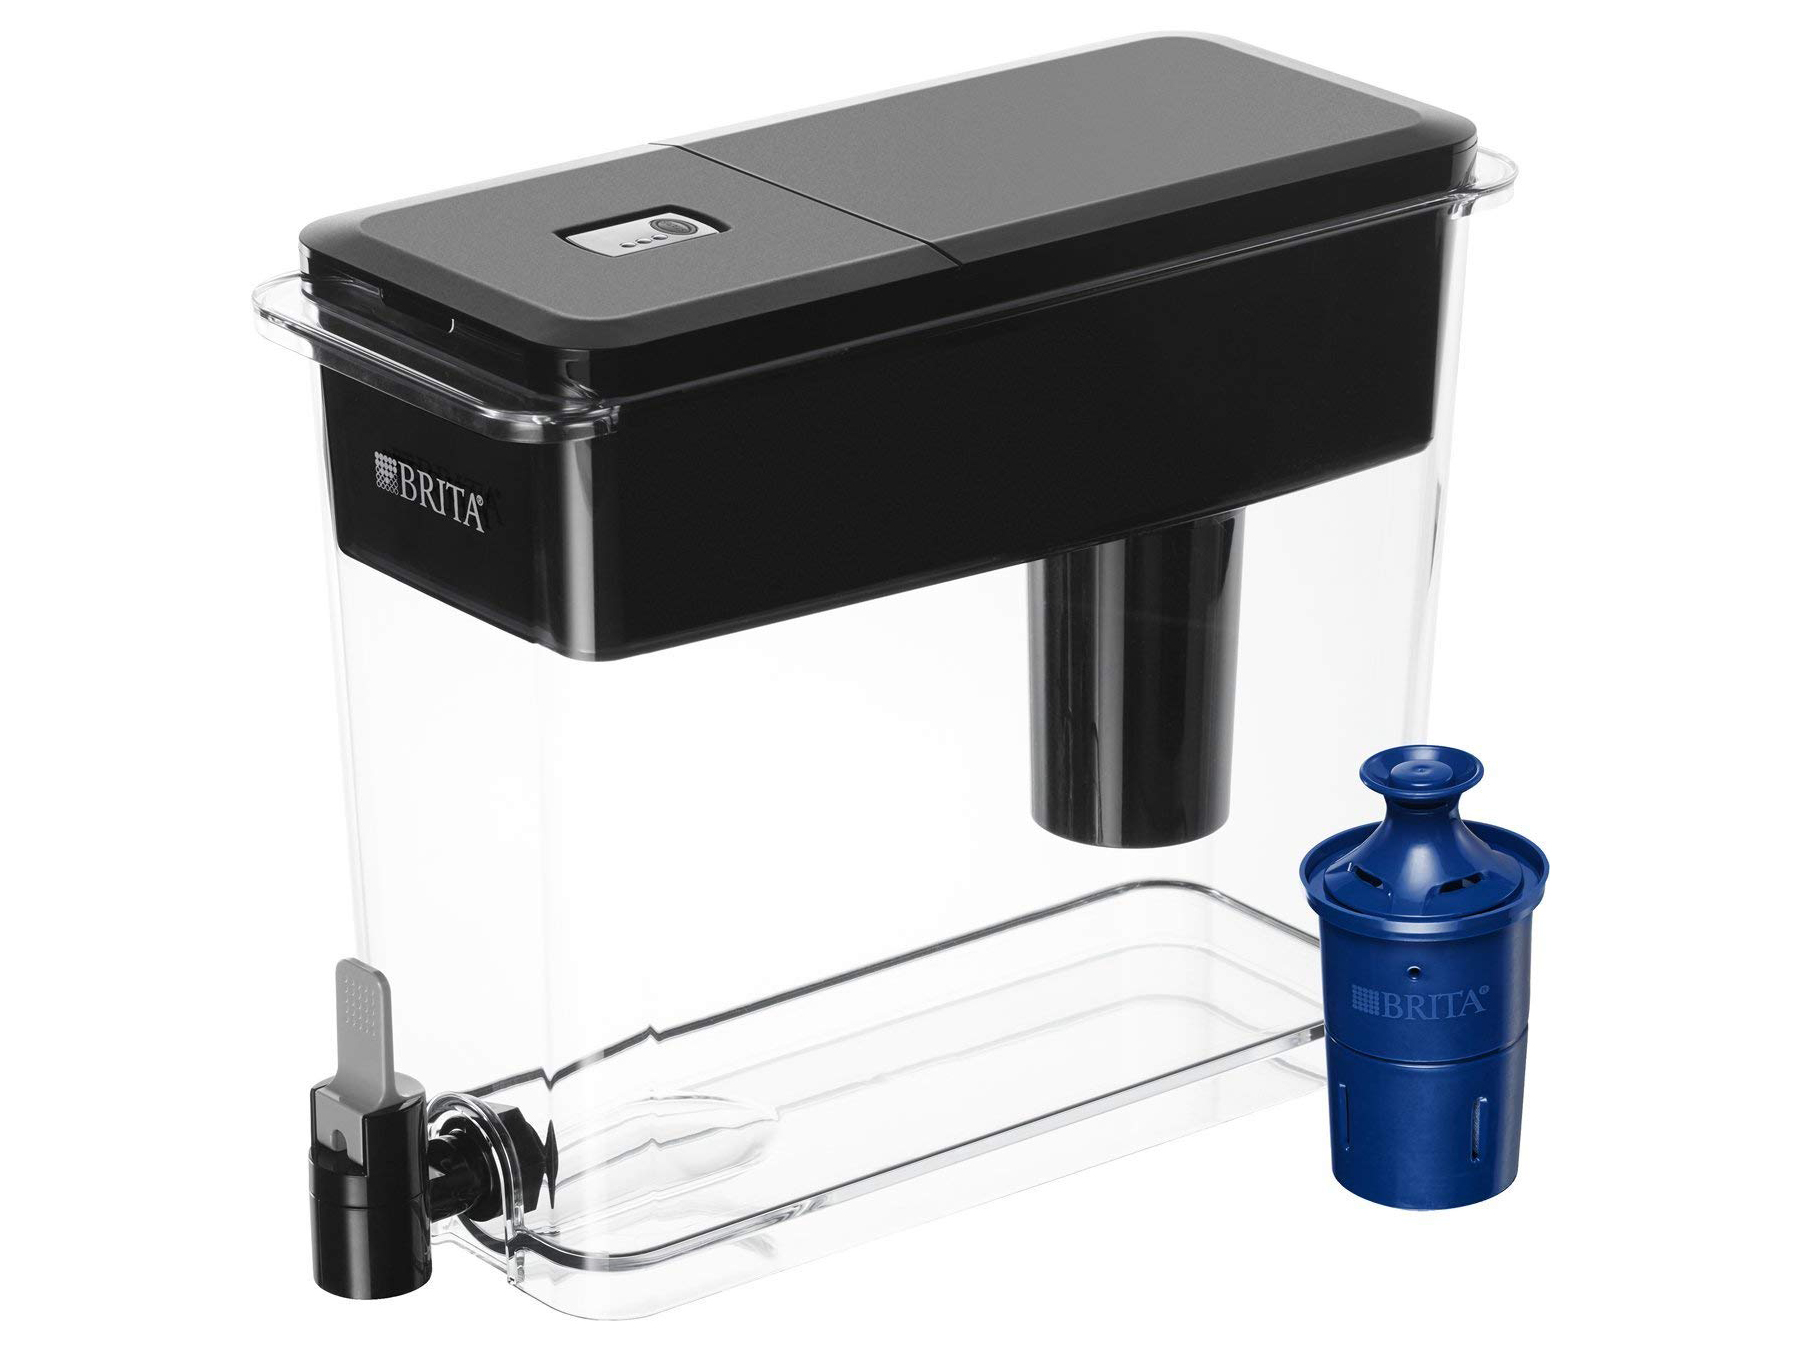 Brita Black Filtered Water Pitcher